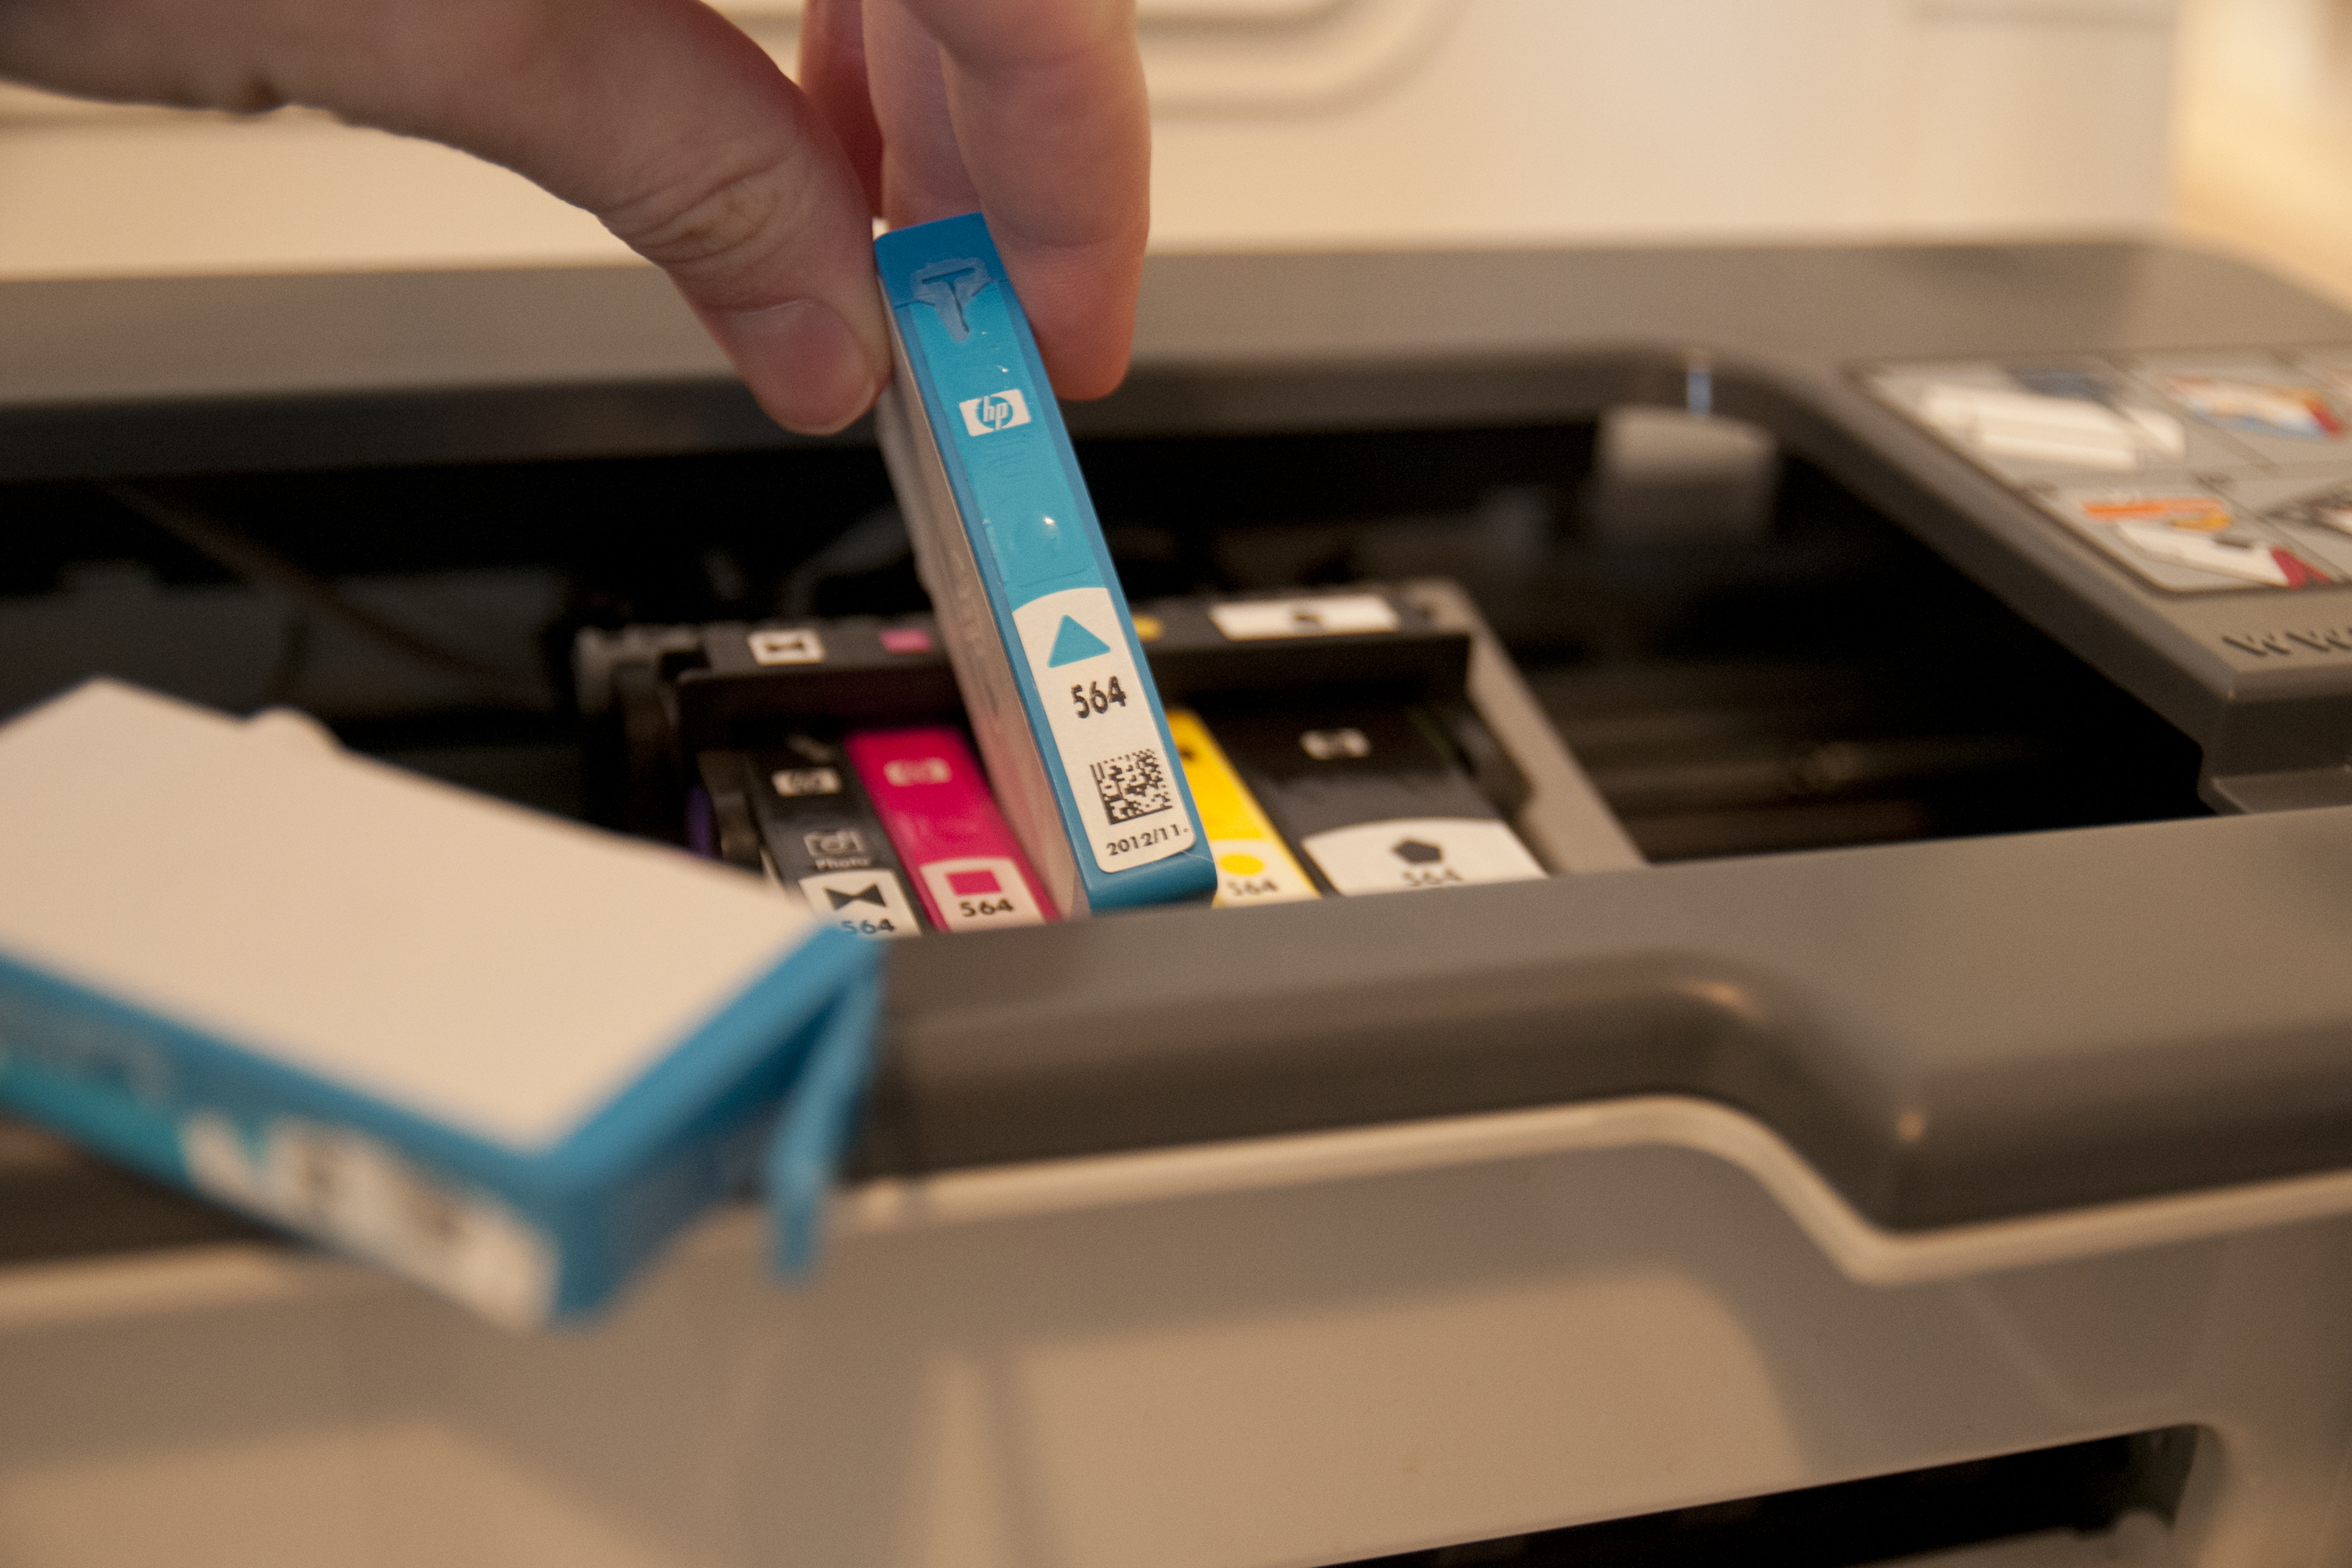 how to fix alignment on hp printer